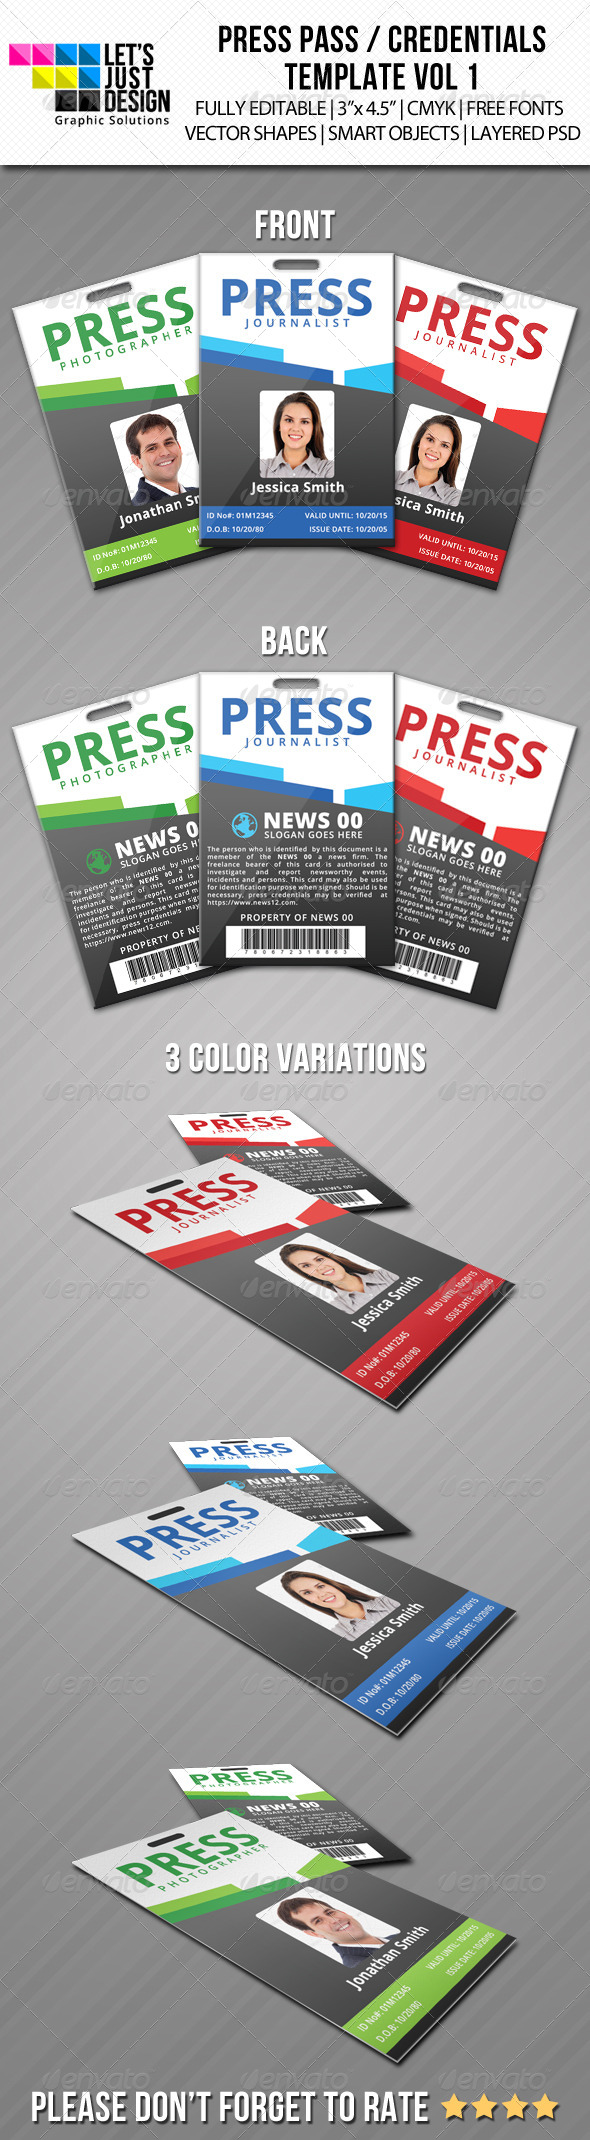 Press Pass / Credentials Template Vol 1 - Miscellaneous Print Templates